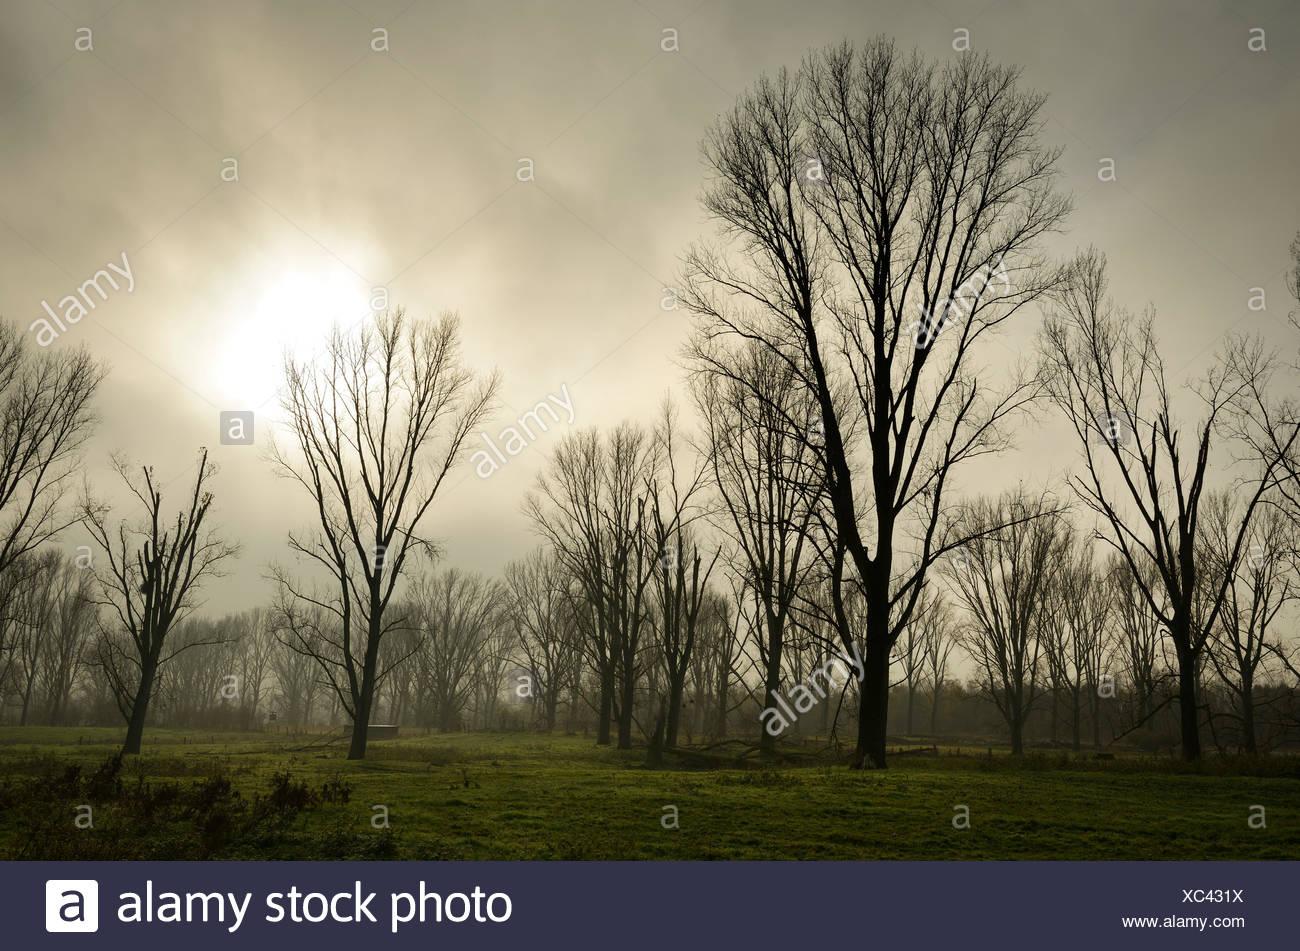 Germany, North Rhine-Westphalia, Neuss, mystical atmosphere at nature reserve - Stock Image